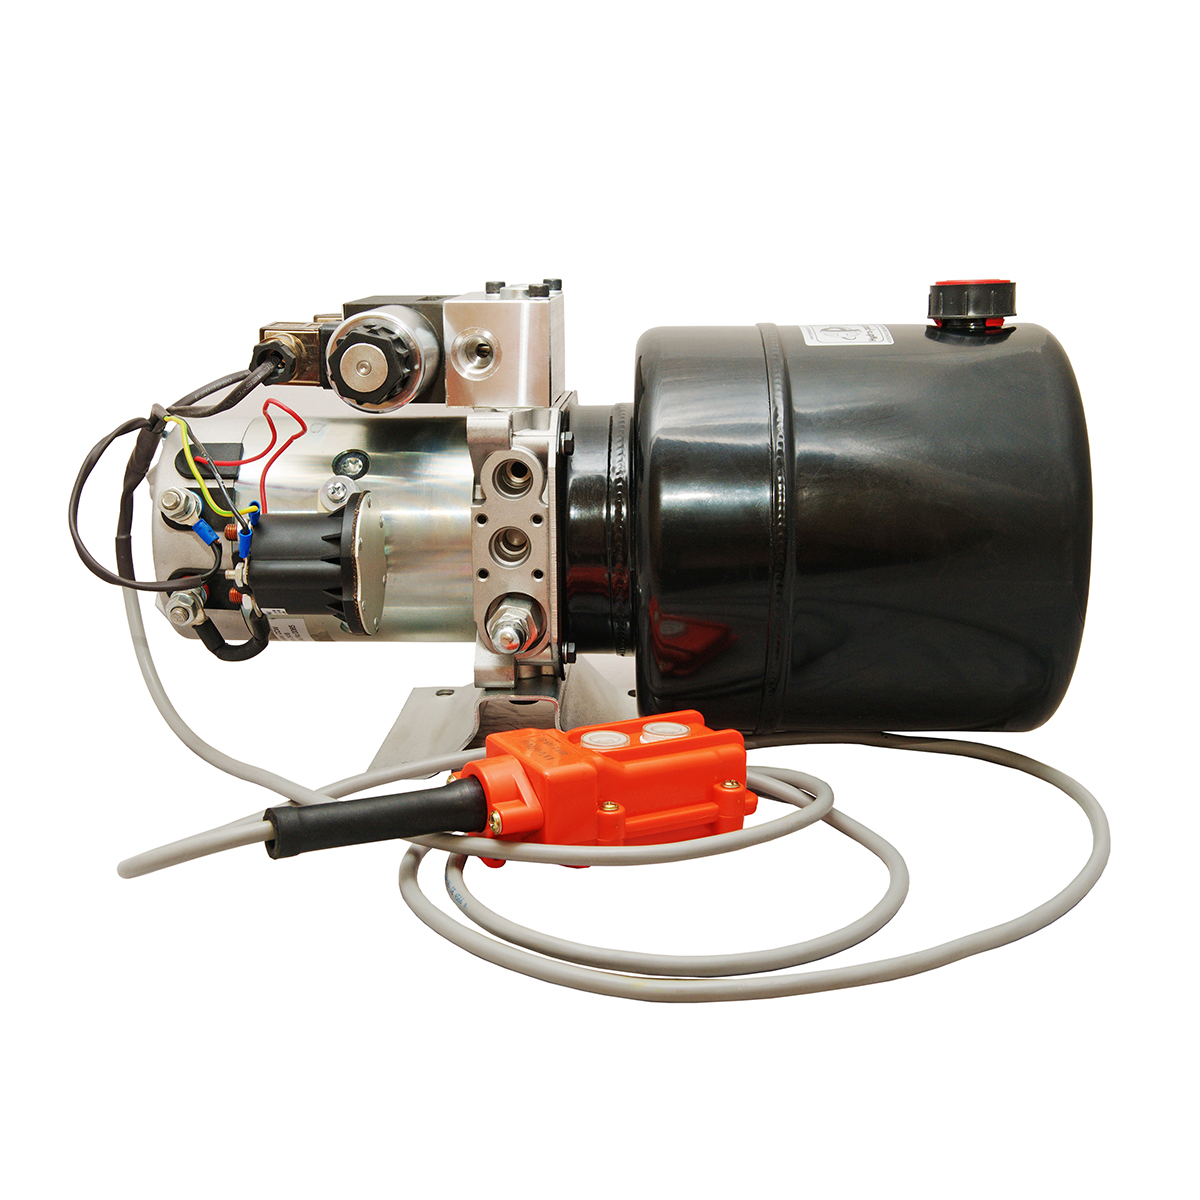 double acting 10 quarts hydraulic power unit 12V DC by Hydro-Pack